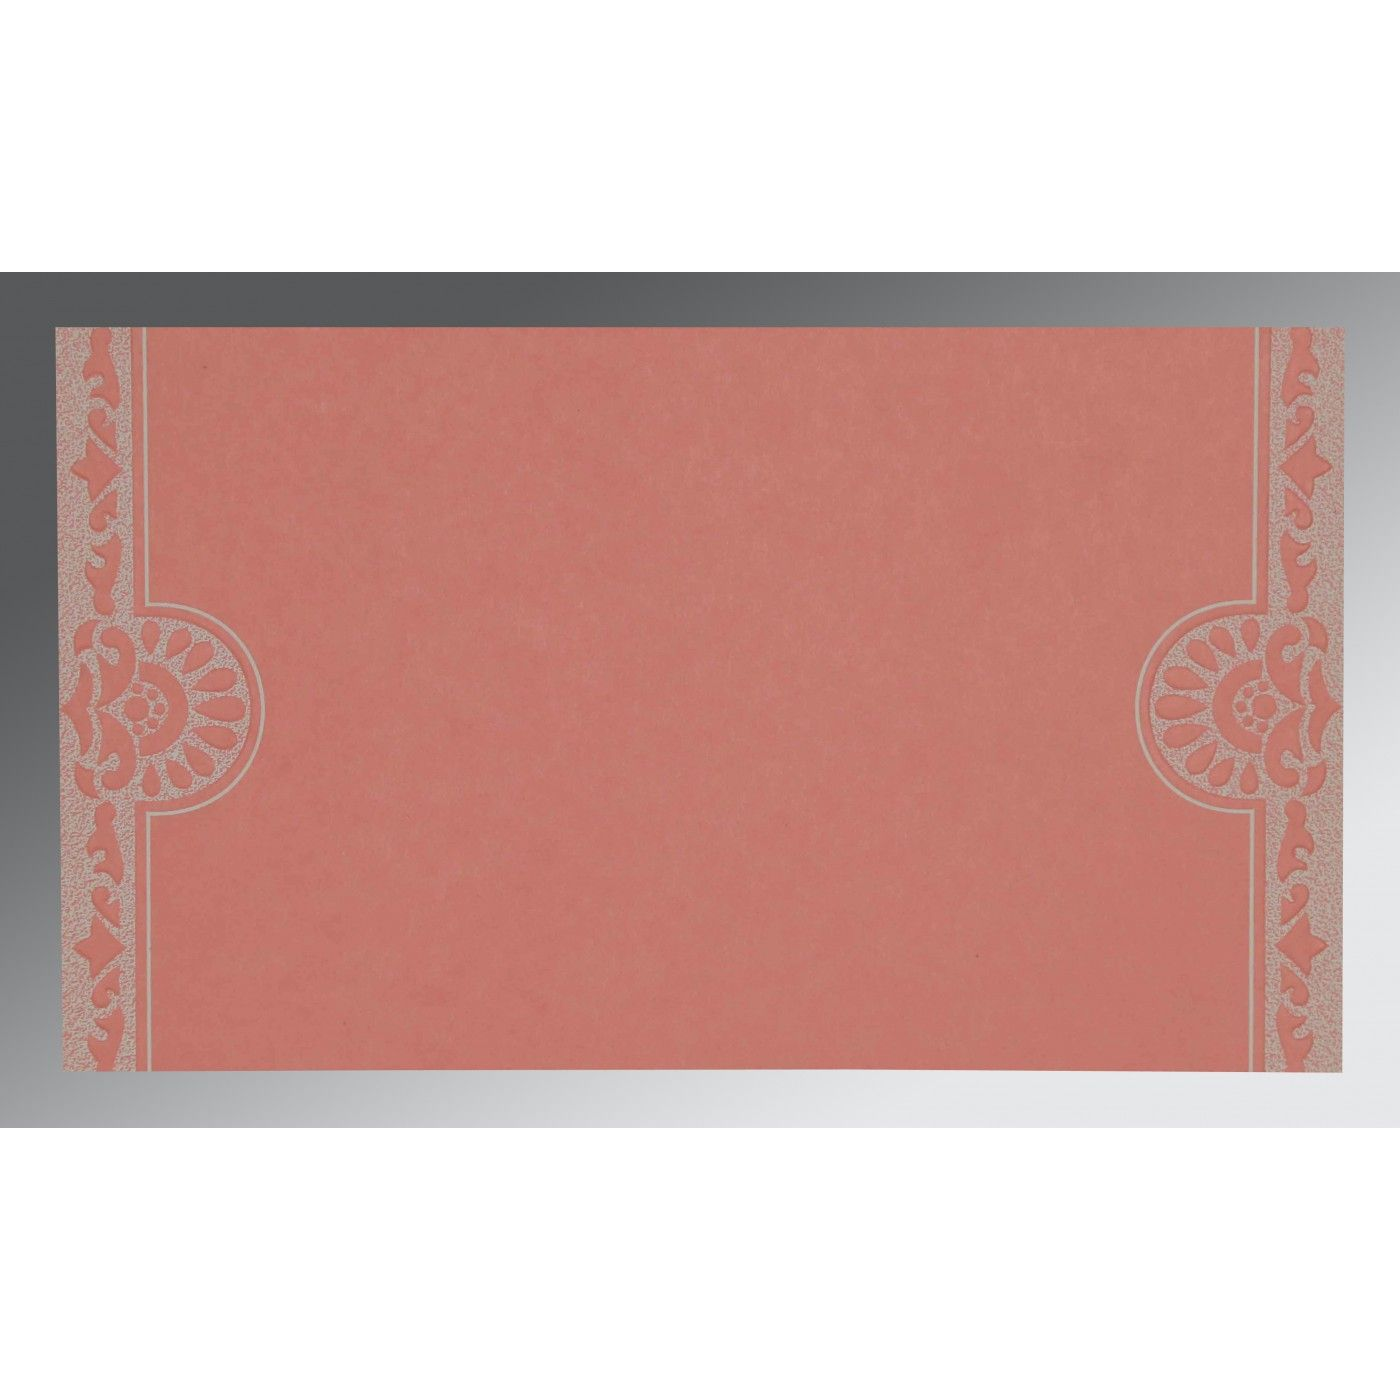 OFF-WHITE PINK SHIMMERY FLORAL THEMED - SCREEN PRINTED WEDDING CARD : CW-8227M - IndianWeddingCards